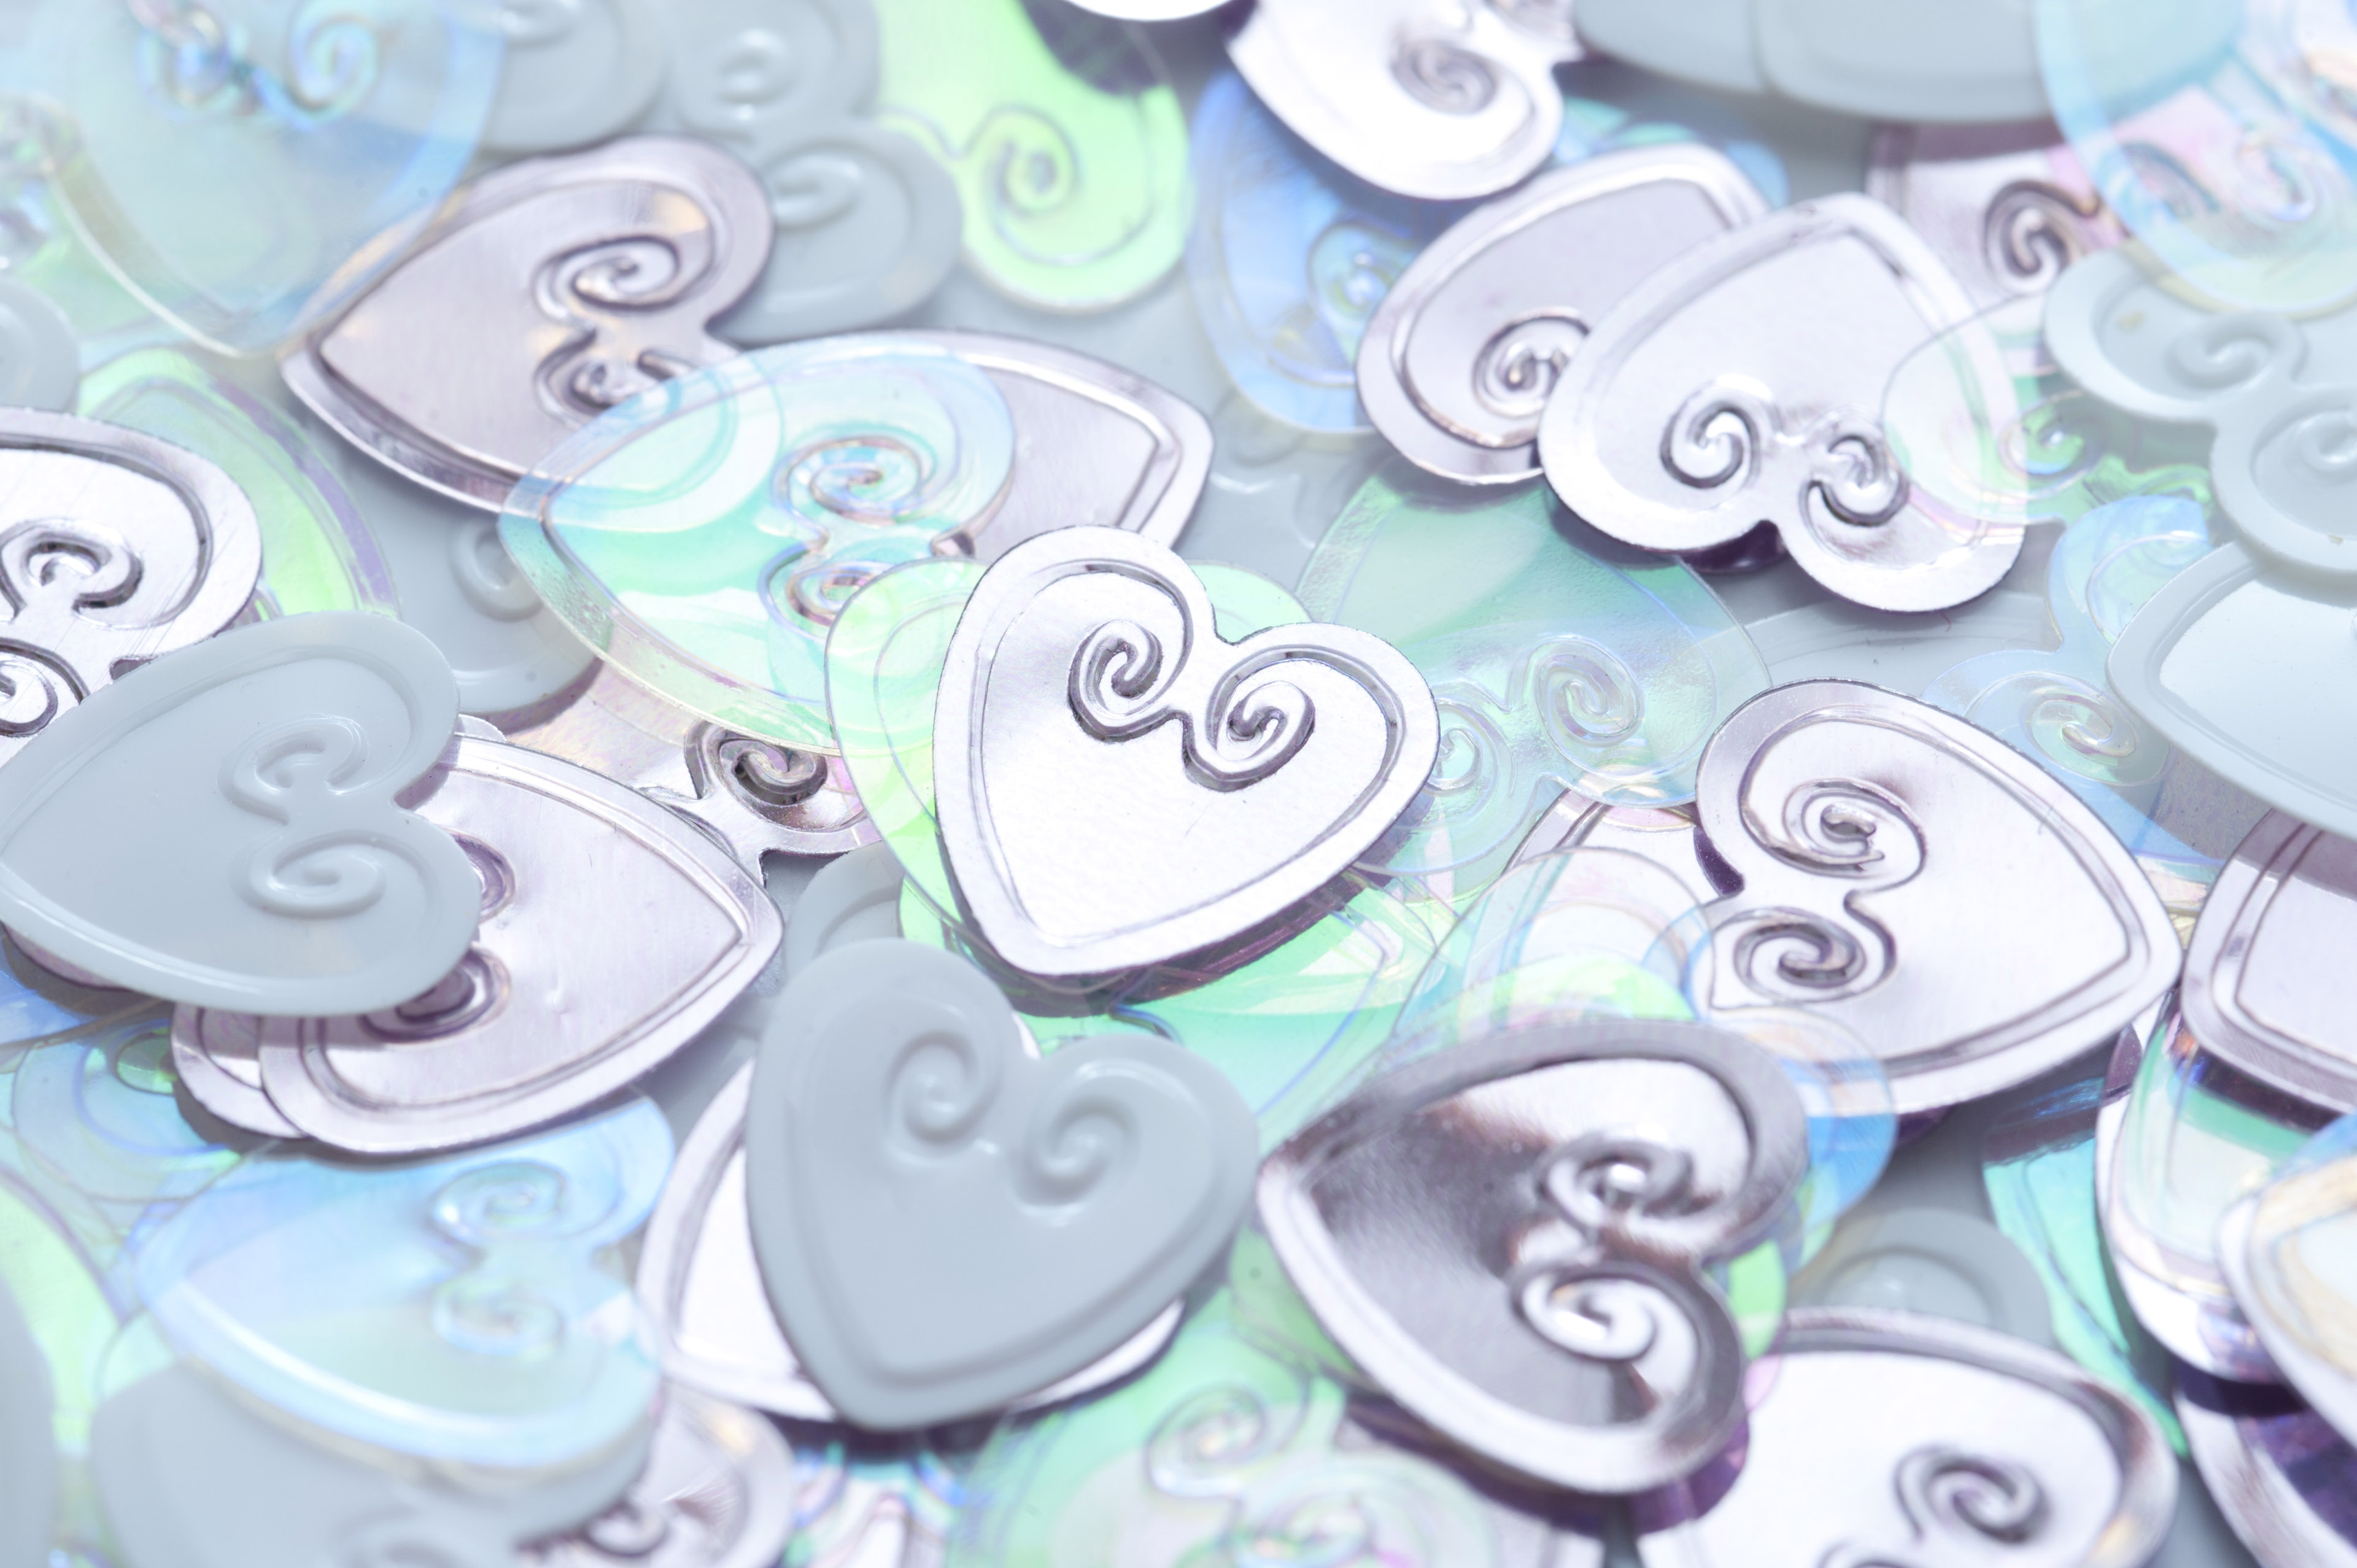 Scattered collection of silver wedding hearts in a close up full frame view symbolic of love and romance